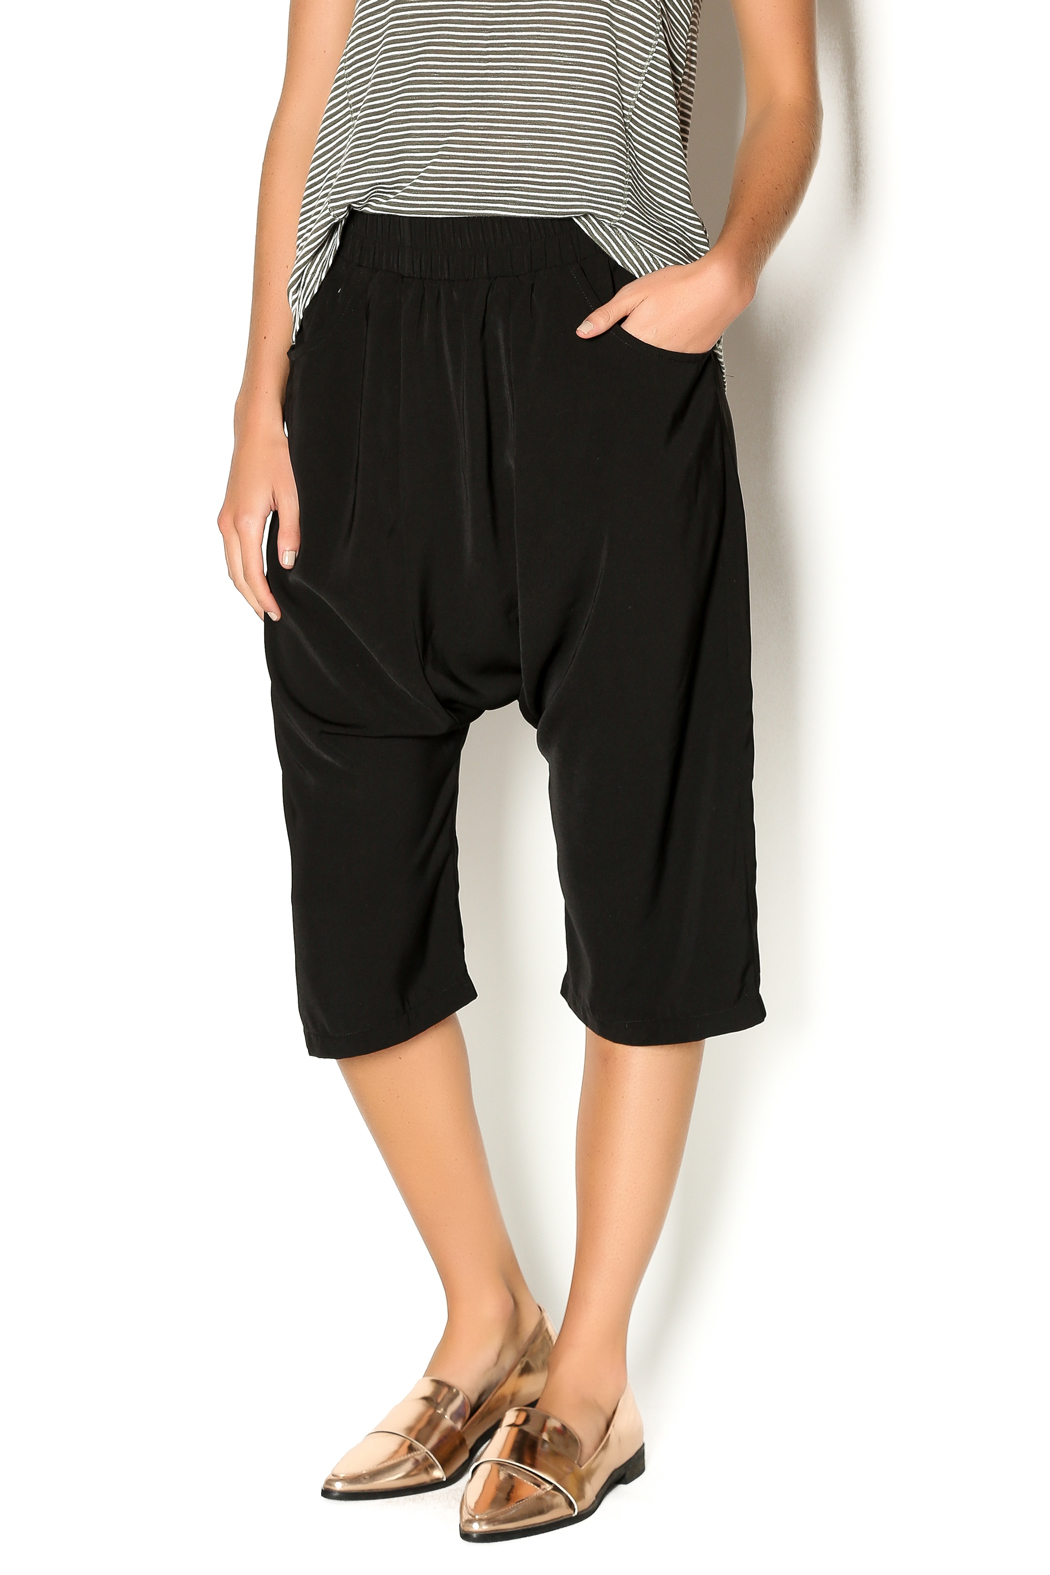 Jun 03, · Pair loose trousers with something unexpected, like a super sexy bustier top. Source. Trousers that are a little more slim fitting look perfect with a cropped tank and a pair of printed heels. This look is easy, effortless, and chic. Source. Loose trousers that .